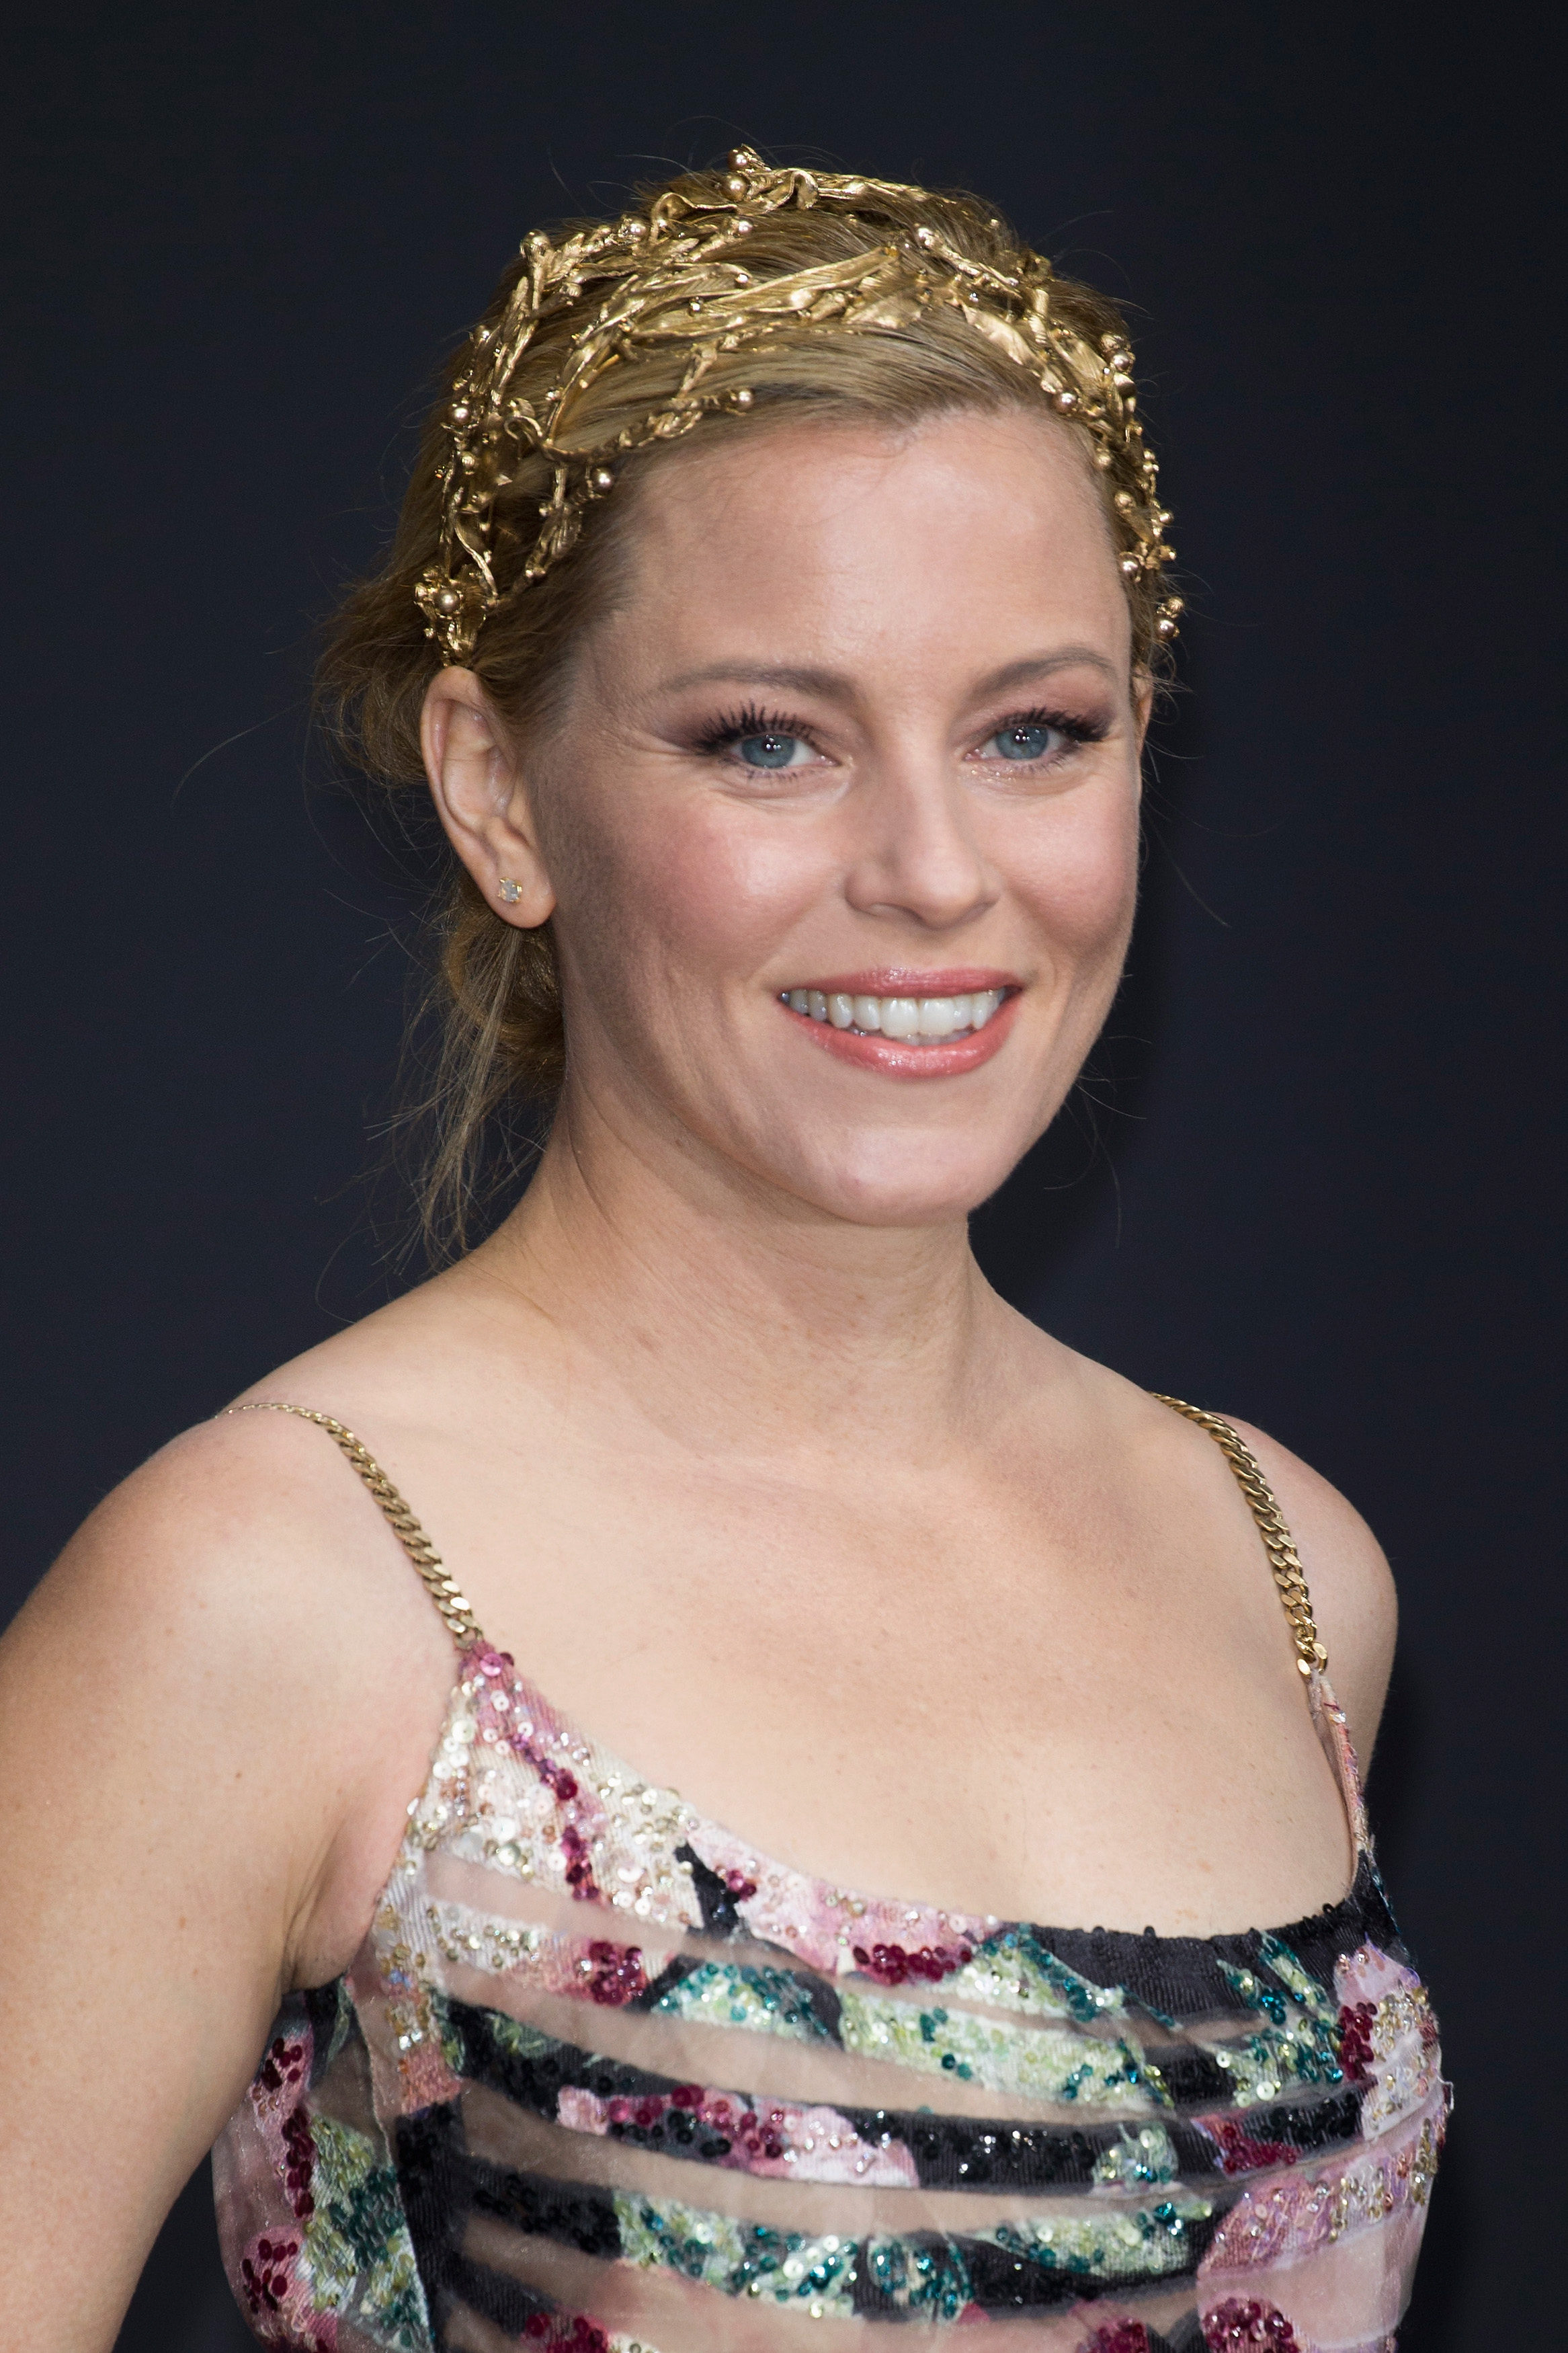 elizabeth banks gold headband